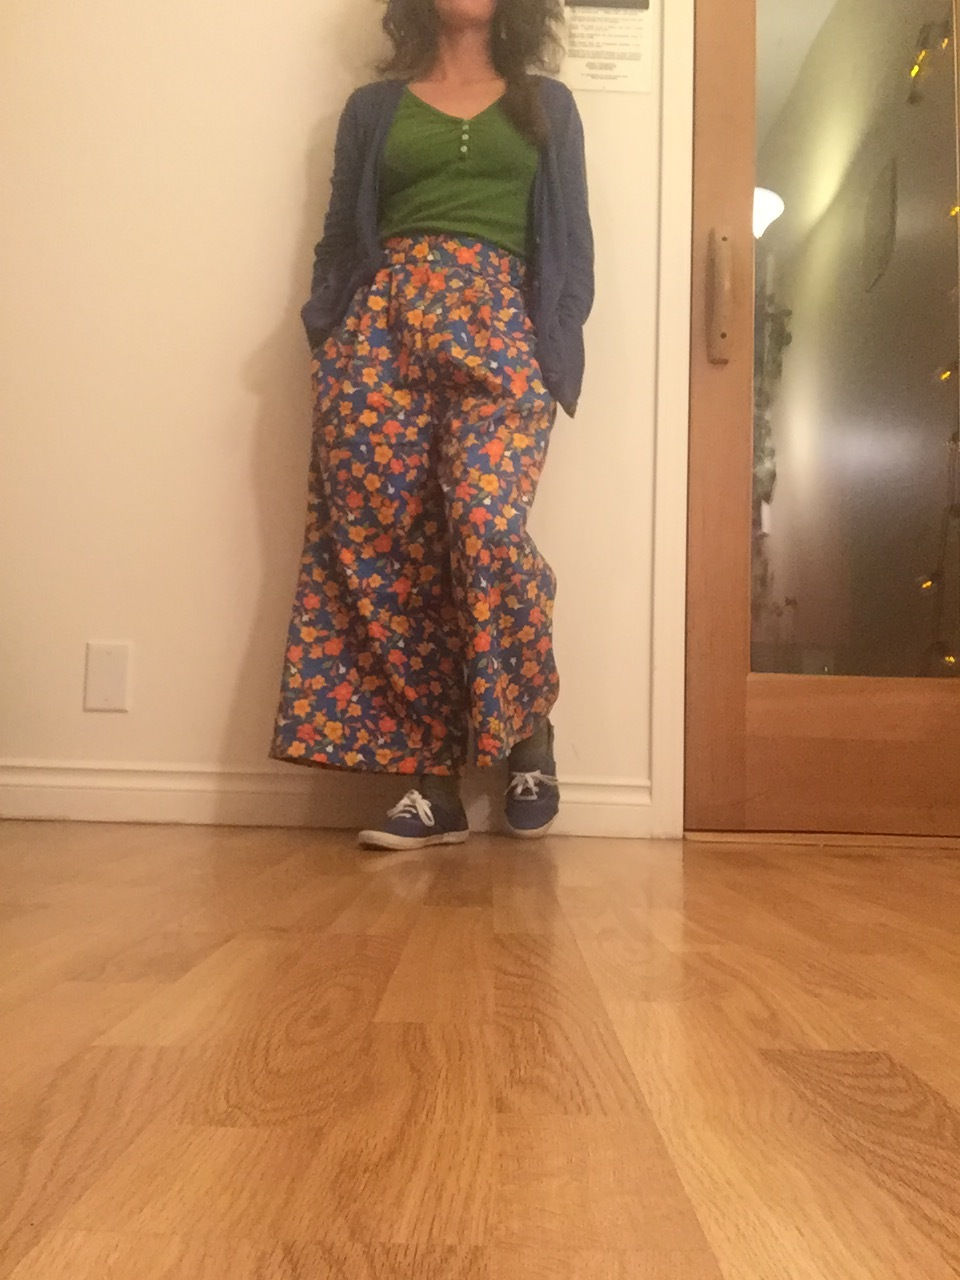 pants for loving (myself)